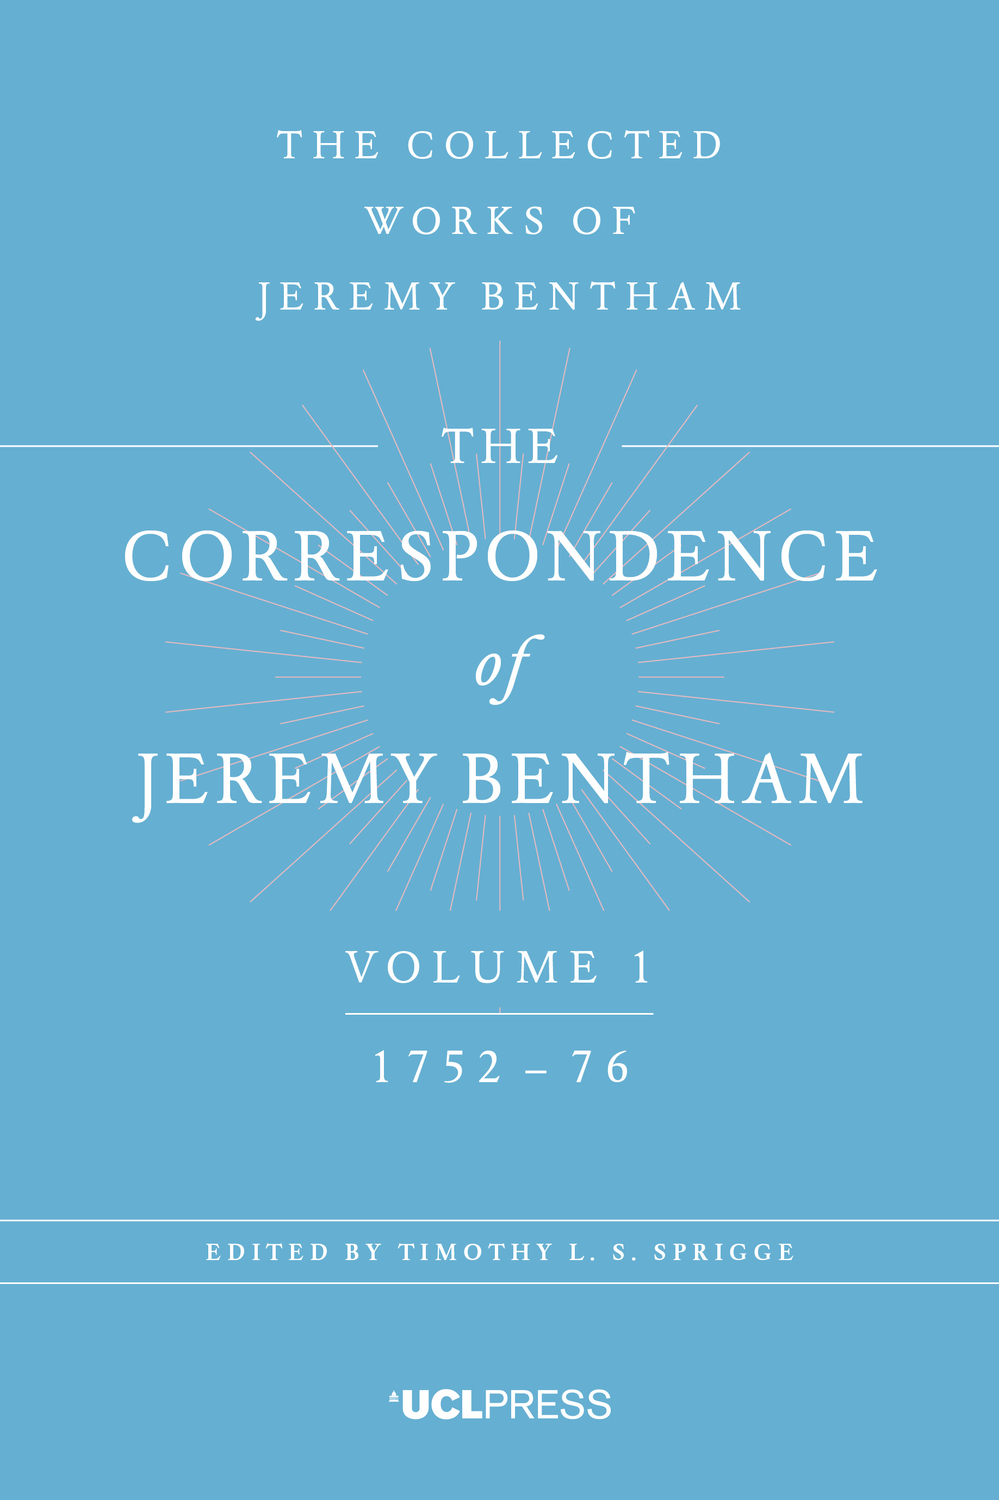 The Correspondence of Jeremy Bentham, Volume 1